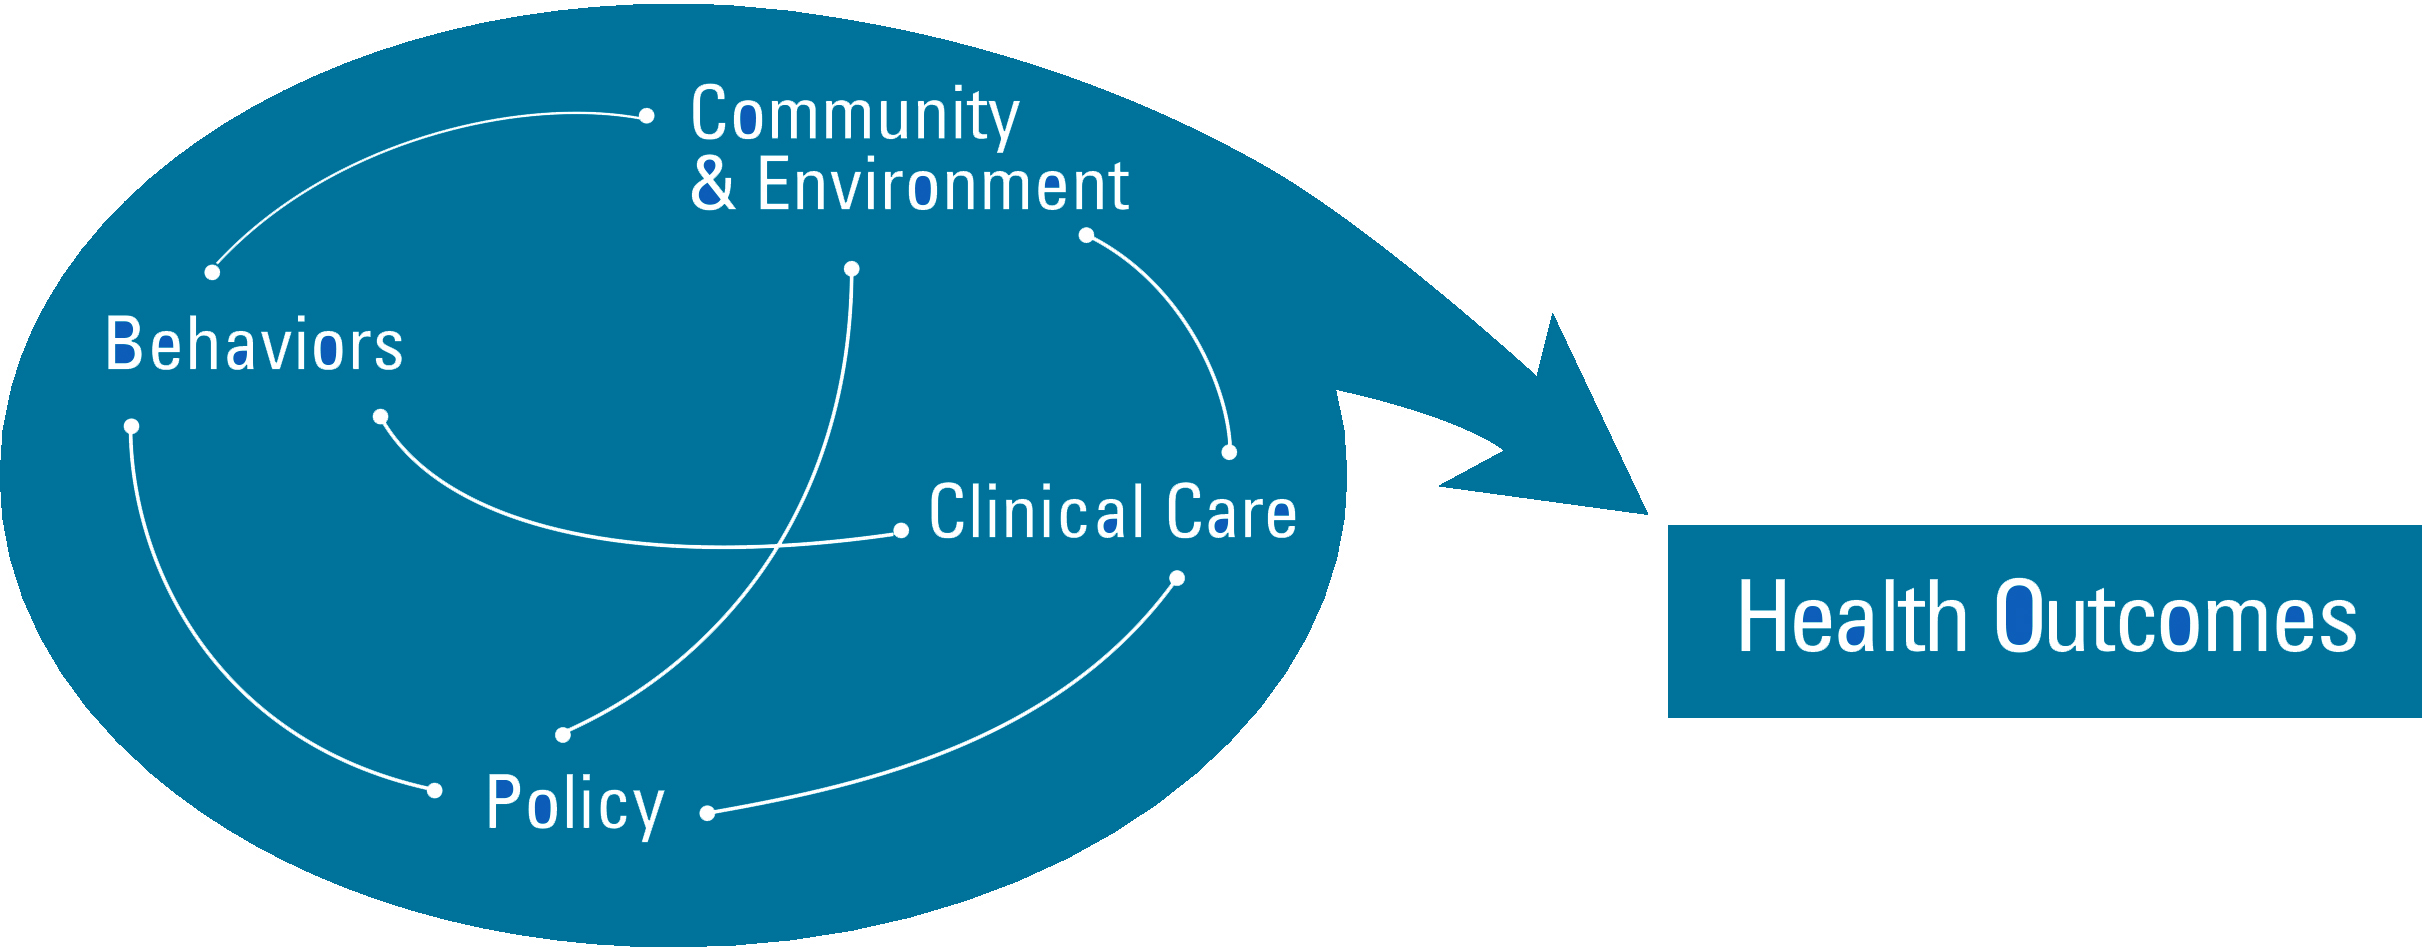 Informational graphic showing how beahaviors, community & environment, clinical care, and public & health policy relate to health outcomes.